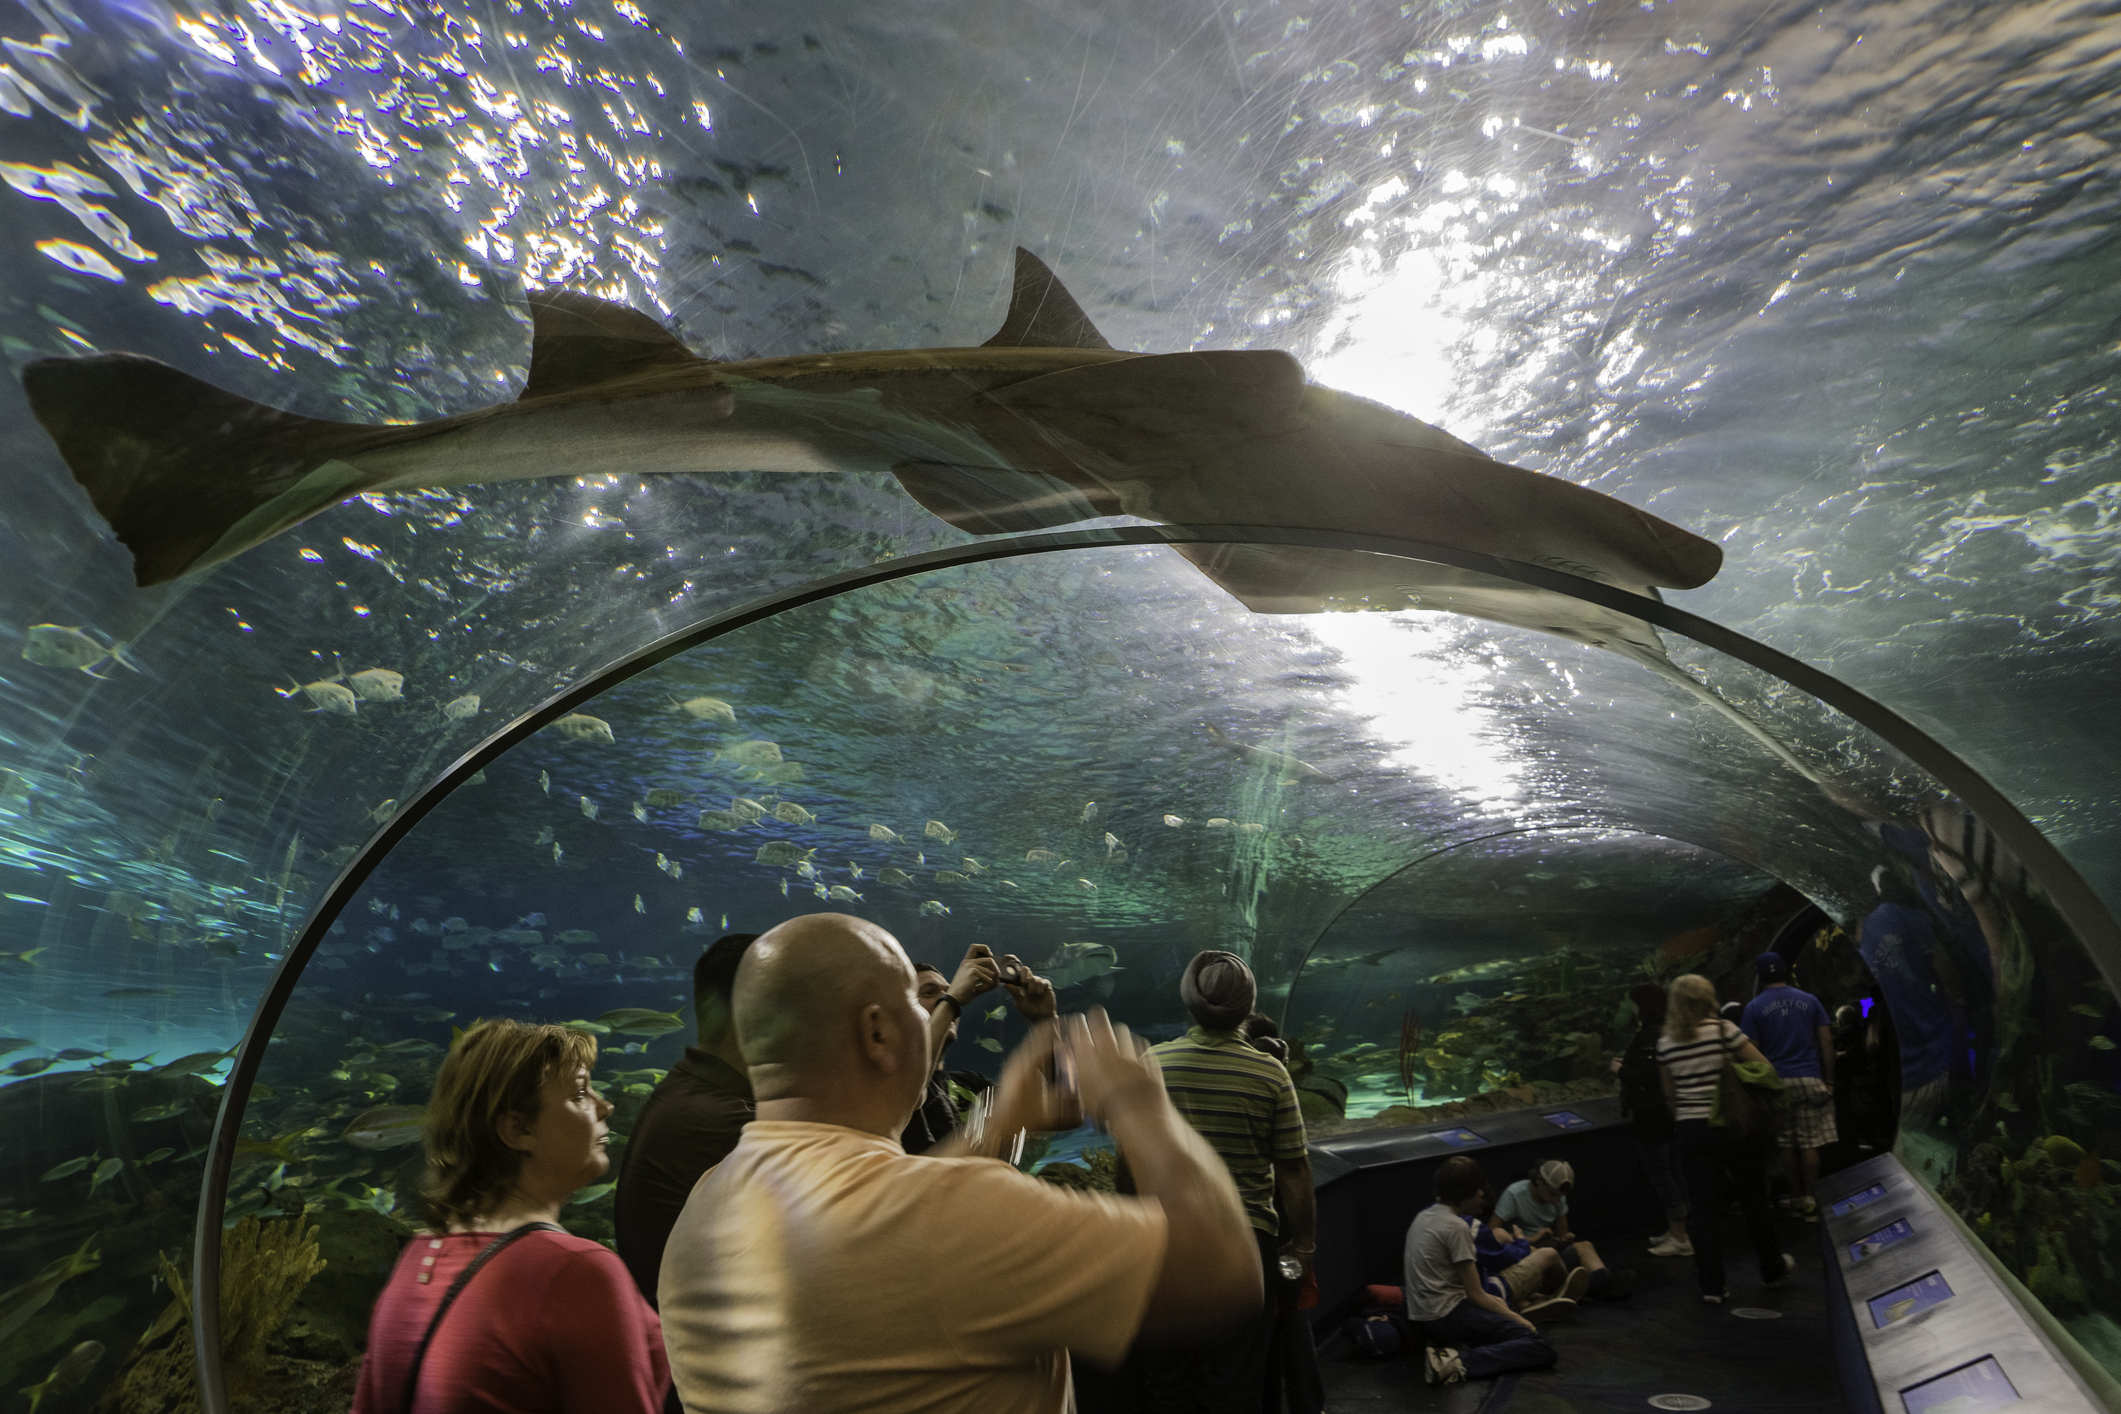 Man swims naked with sharks in Toronto aquarium